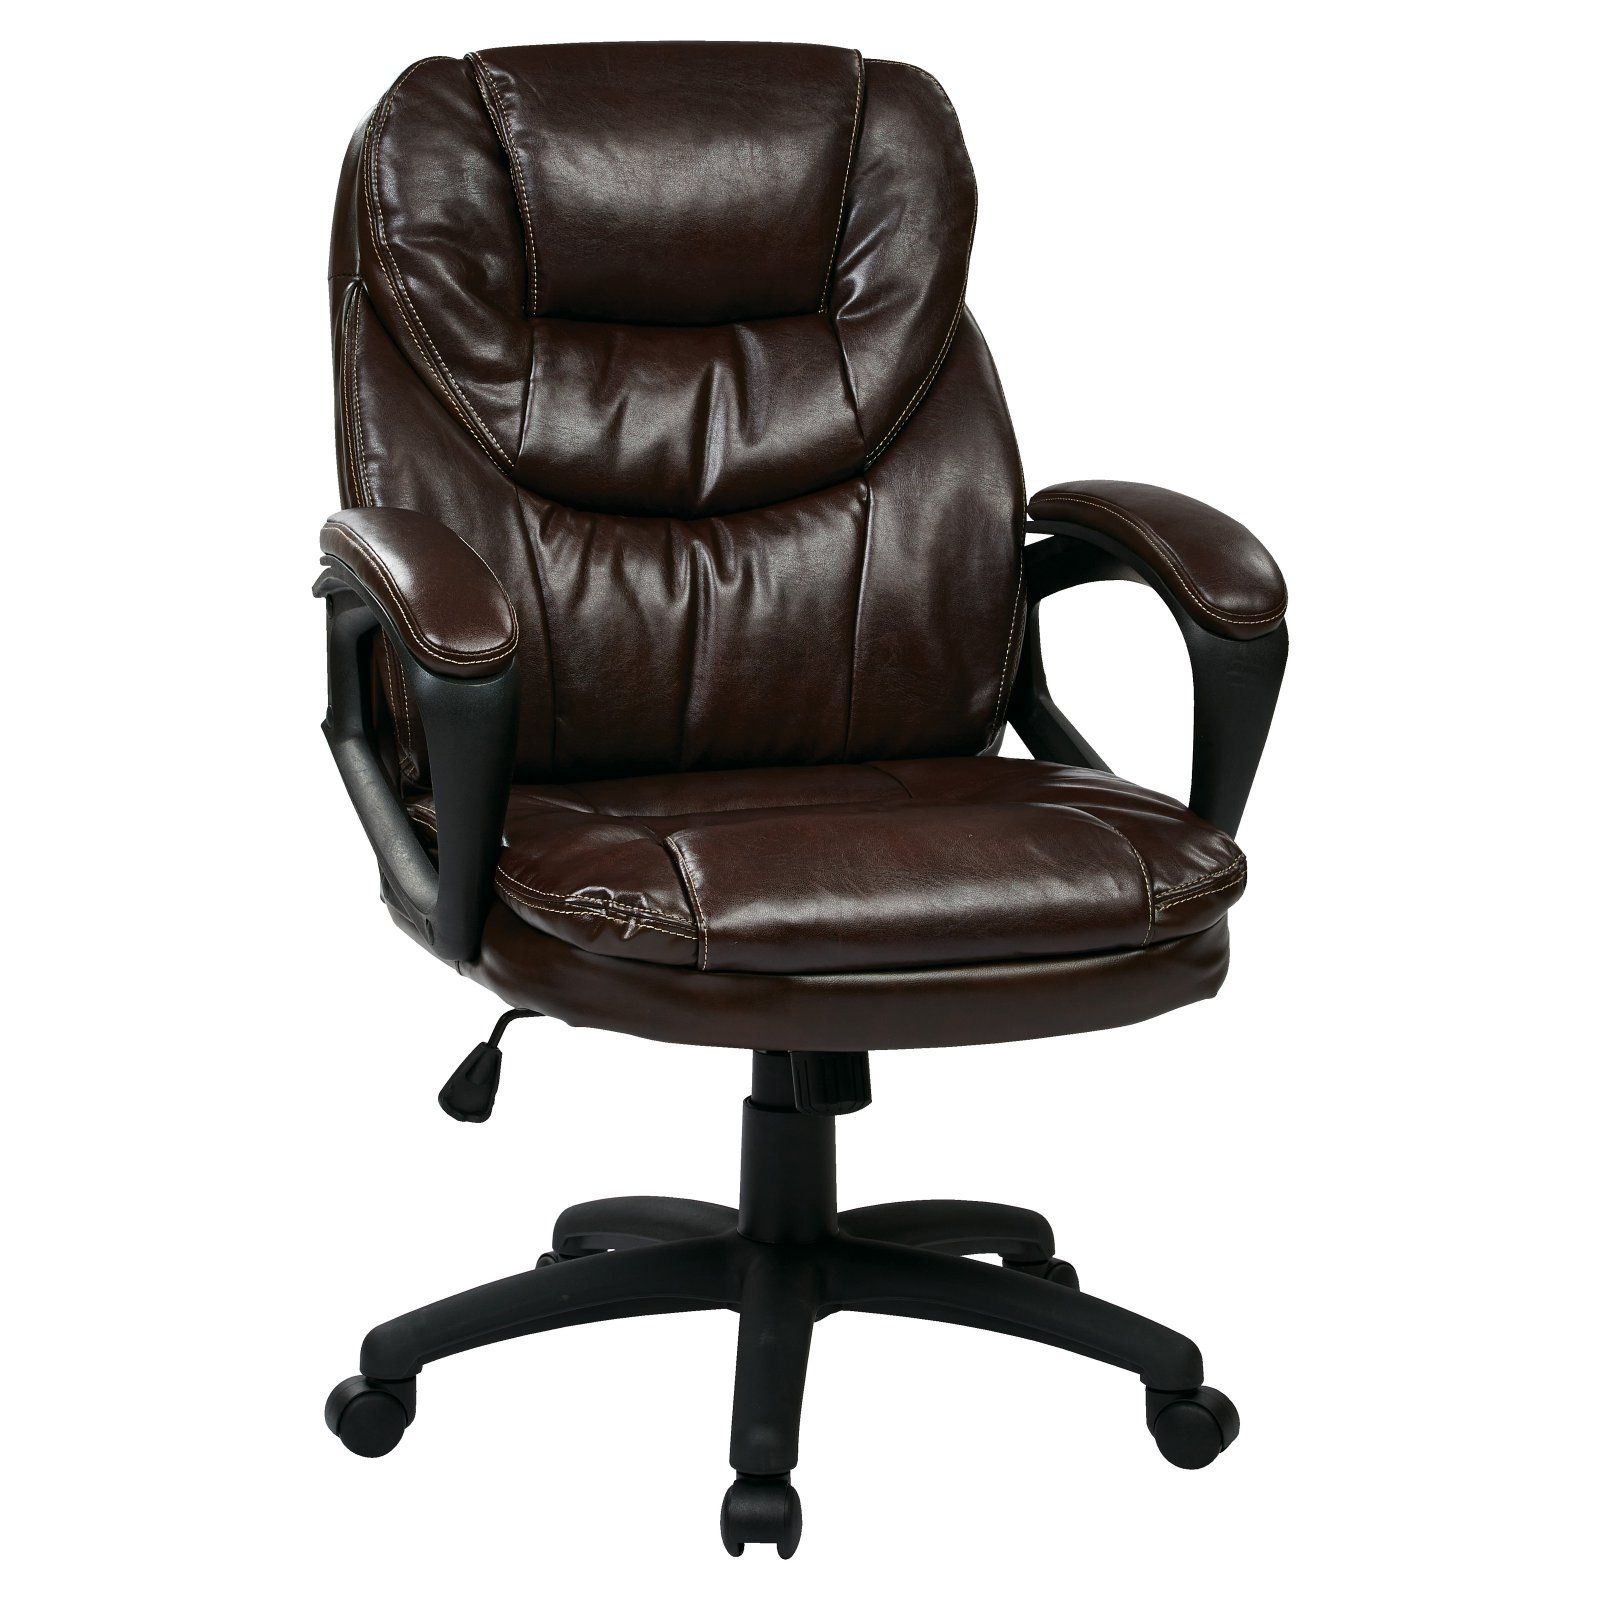 Faux-Leather Executive Swivel Manager's Office Chair with Padded Arms